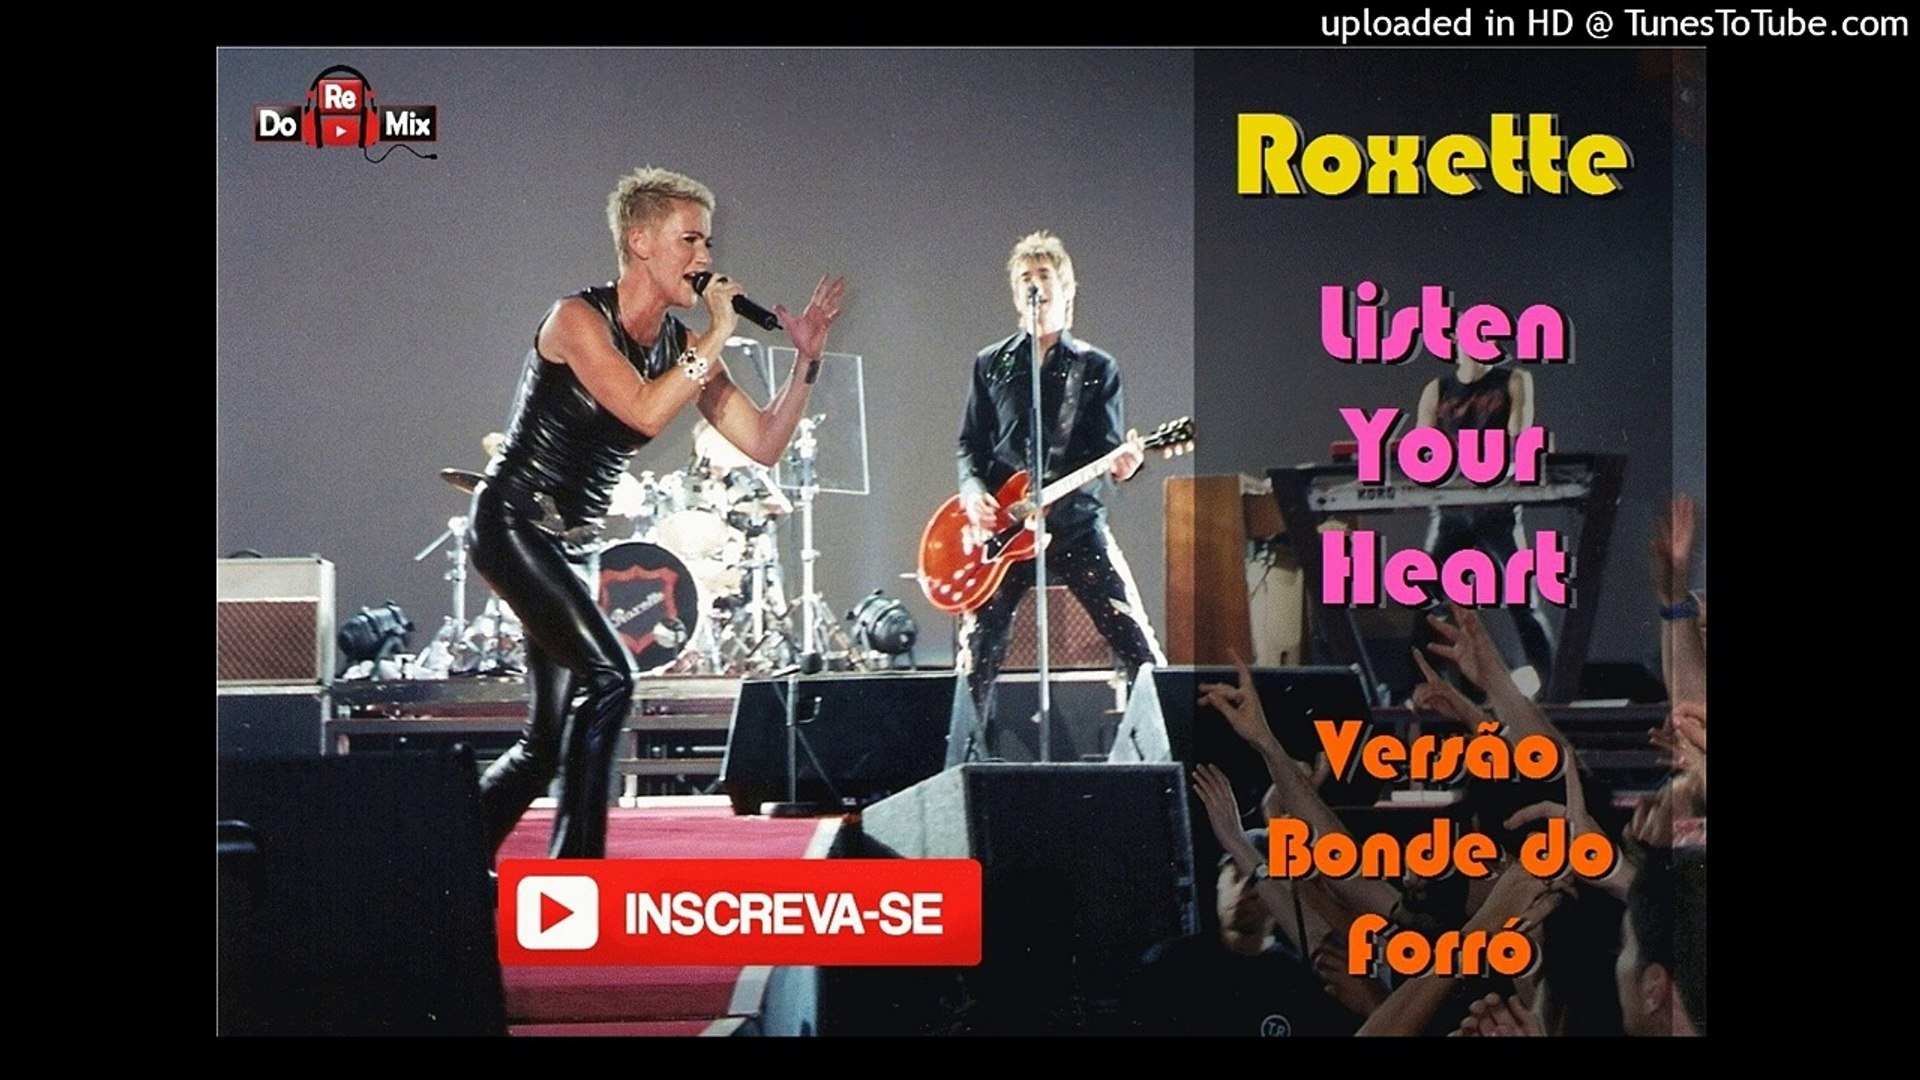 Roxette - Listen Your Heart ( Bonde do forró )